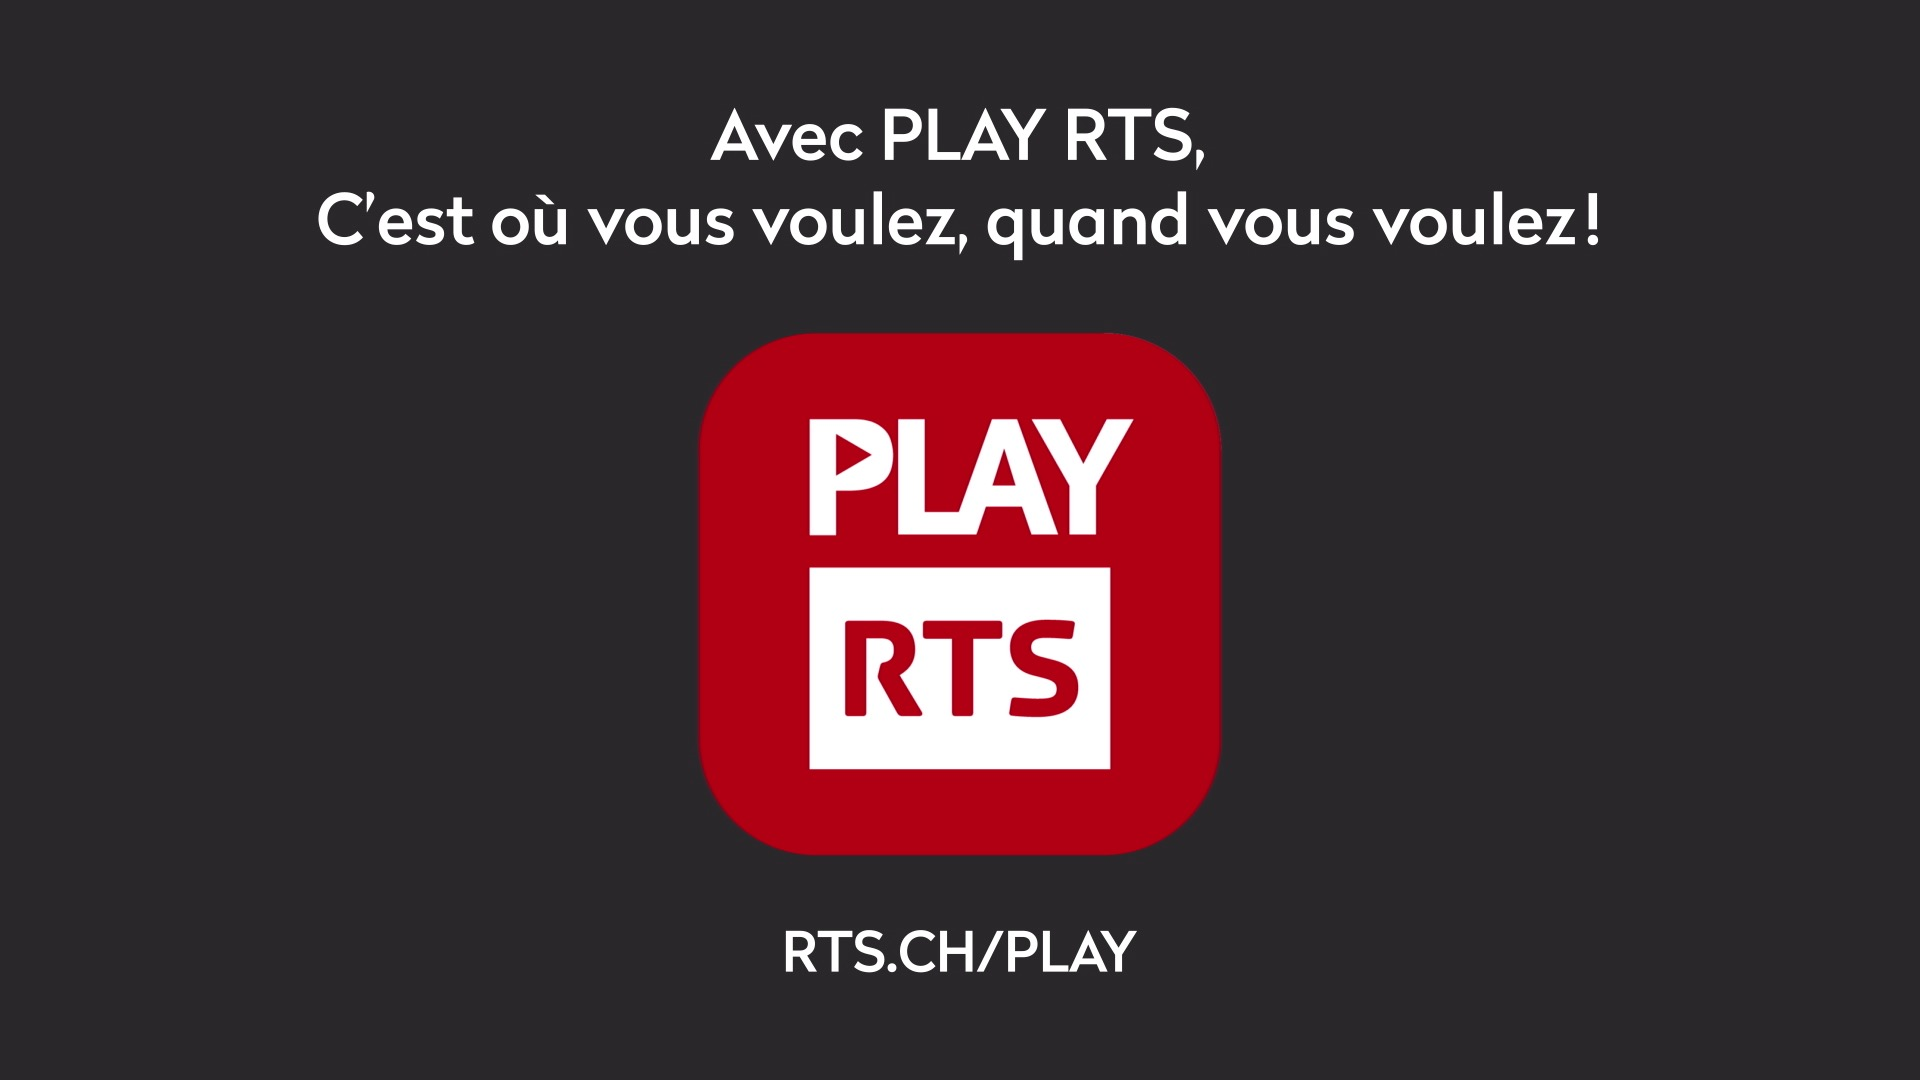 RTS App_Play RTS_Une